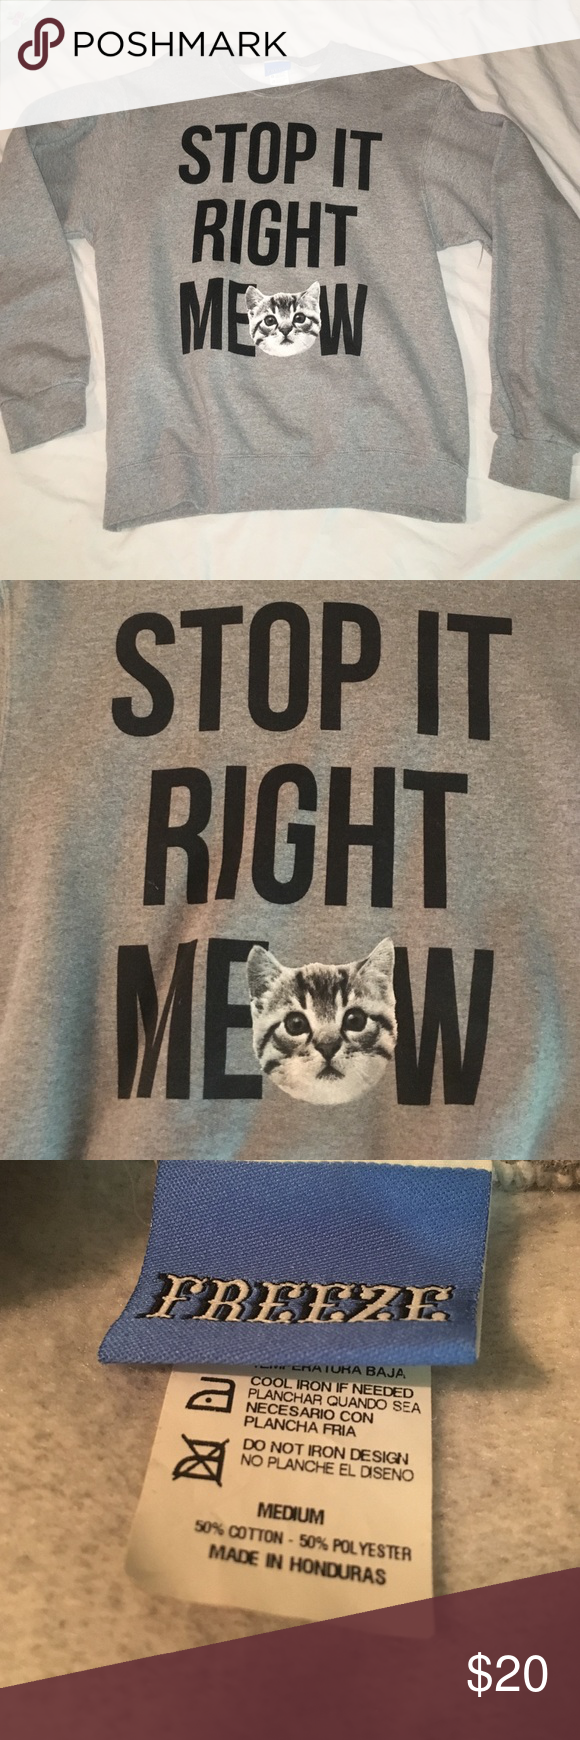 Stop it right meow crewneck Purchased from Urban Outfitters. Worn a few times but in perfect condition. Very soft and comfy. The inside is very soft as well. Size medium but I'm a small. Bought it to be oversized and more comfy. Listed under Brandy Melville for exposure. Brandy Melville Sweaters Crew & Scoop Necks